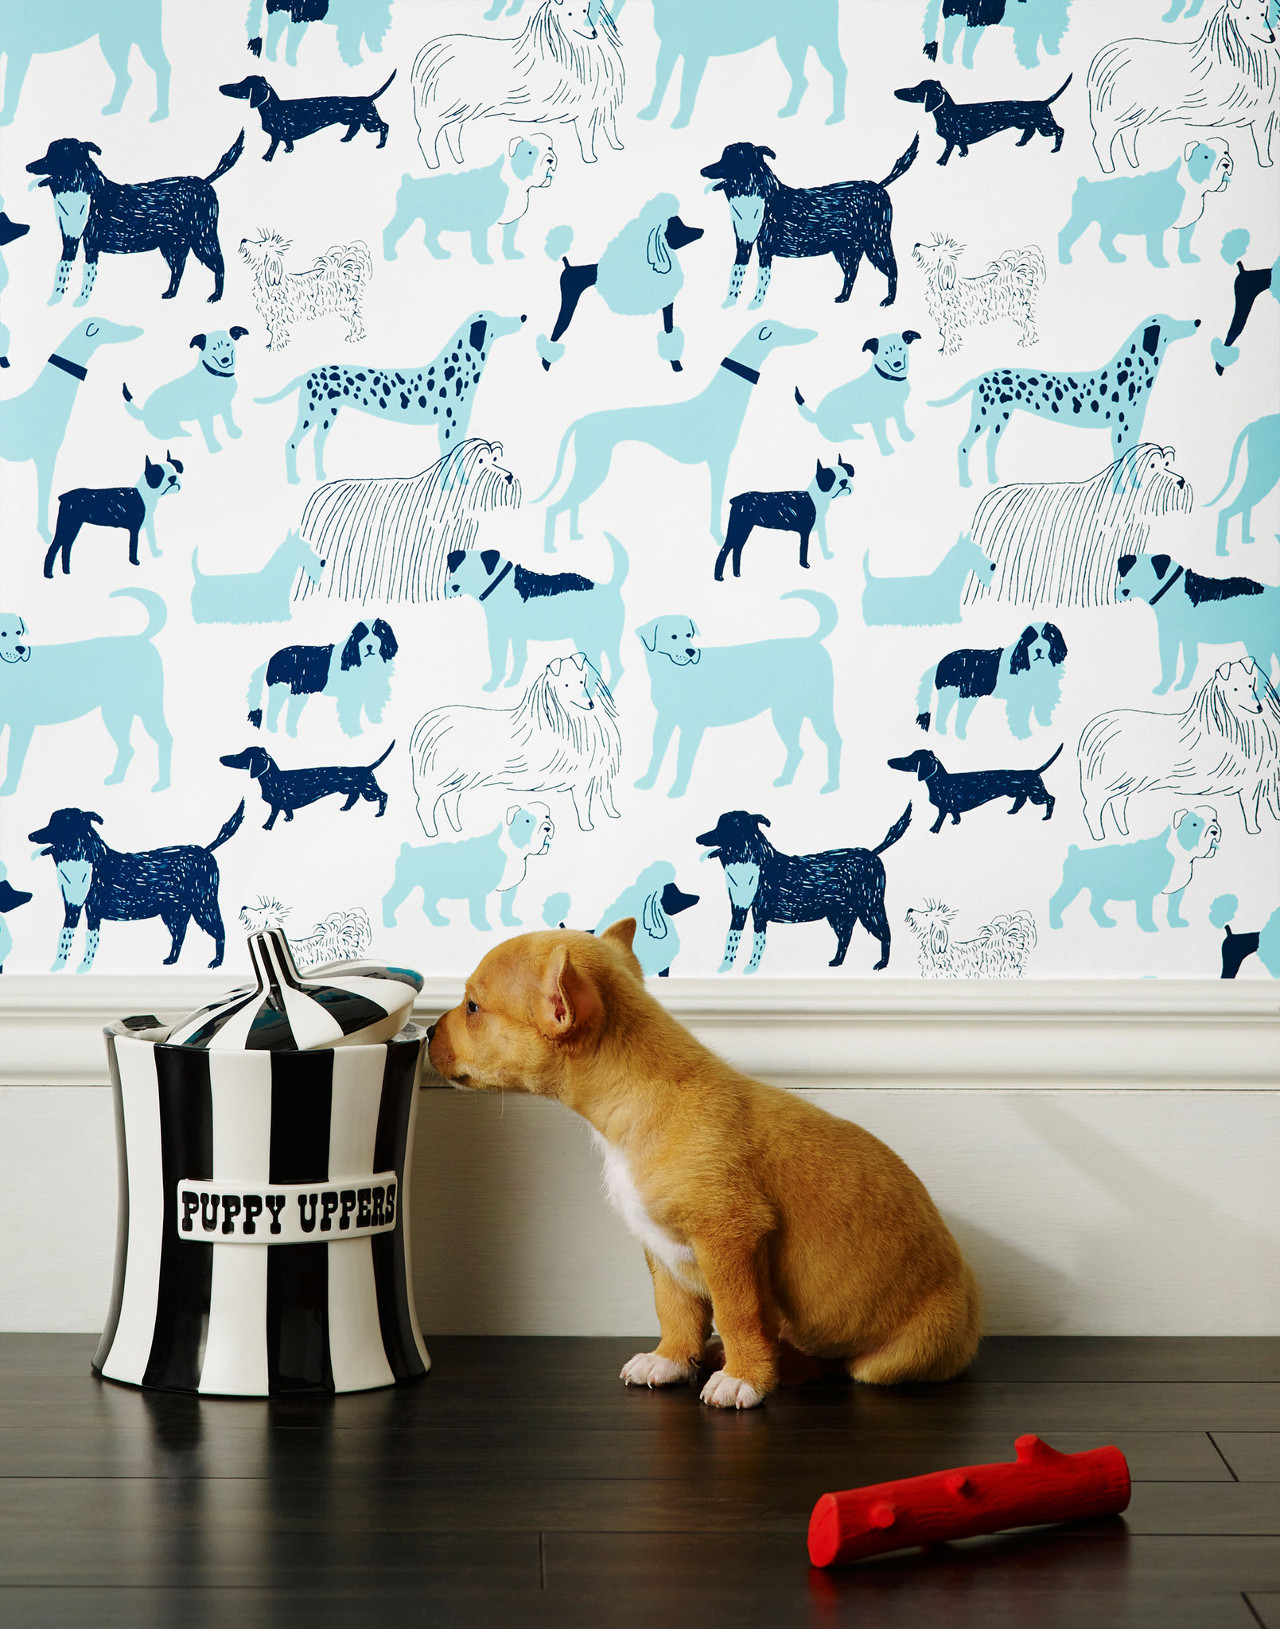 Dog Park Wallpaper by Julia Rothman